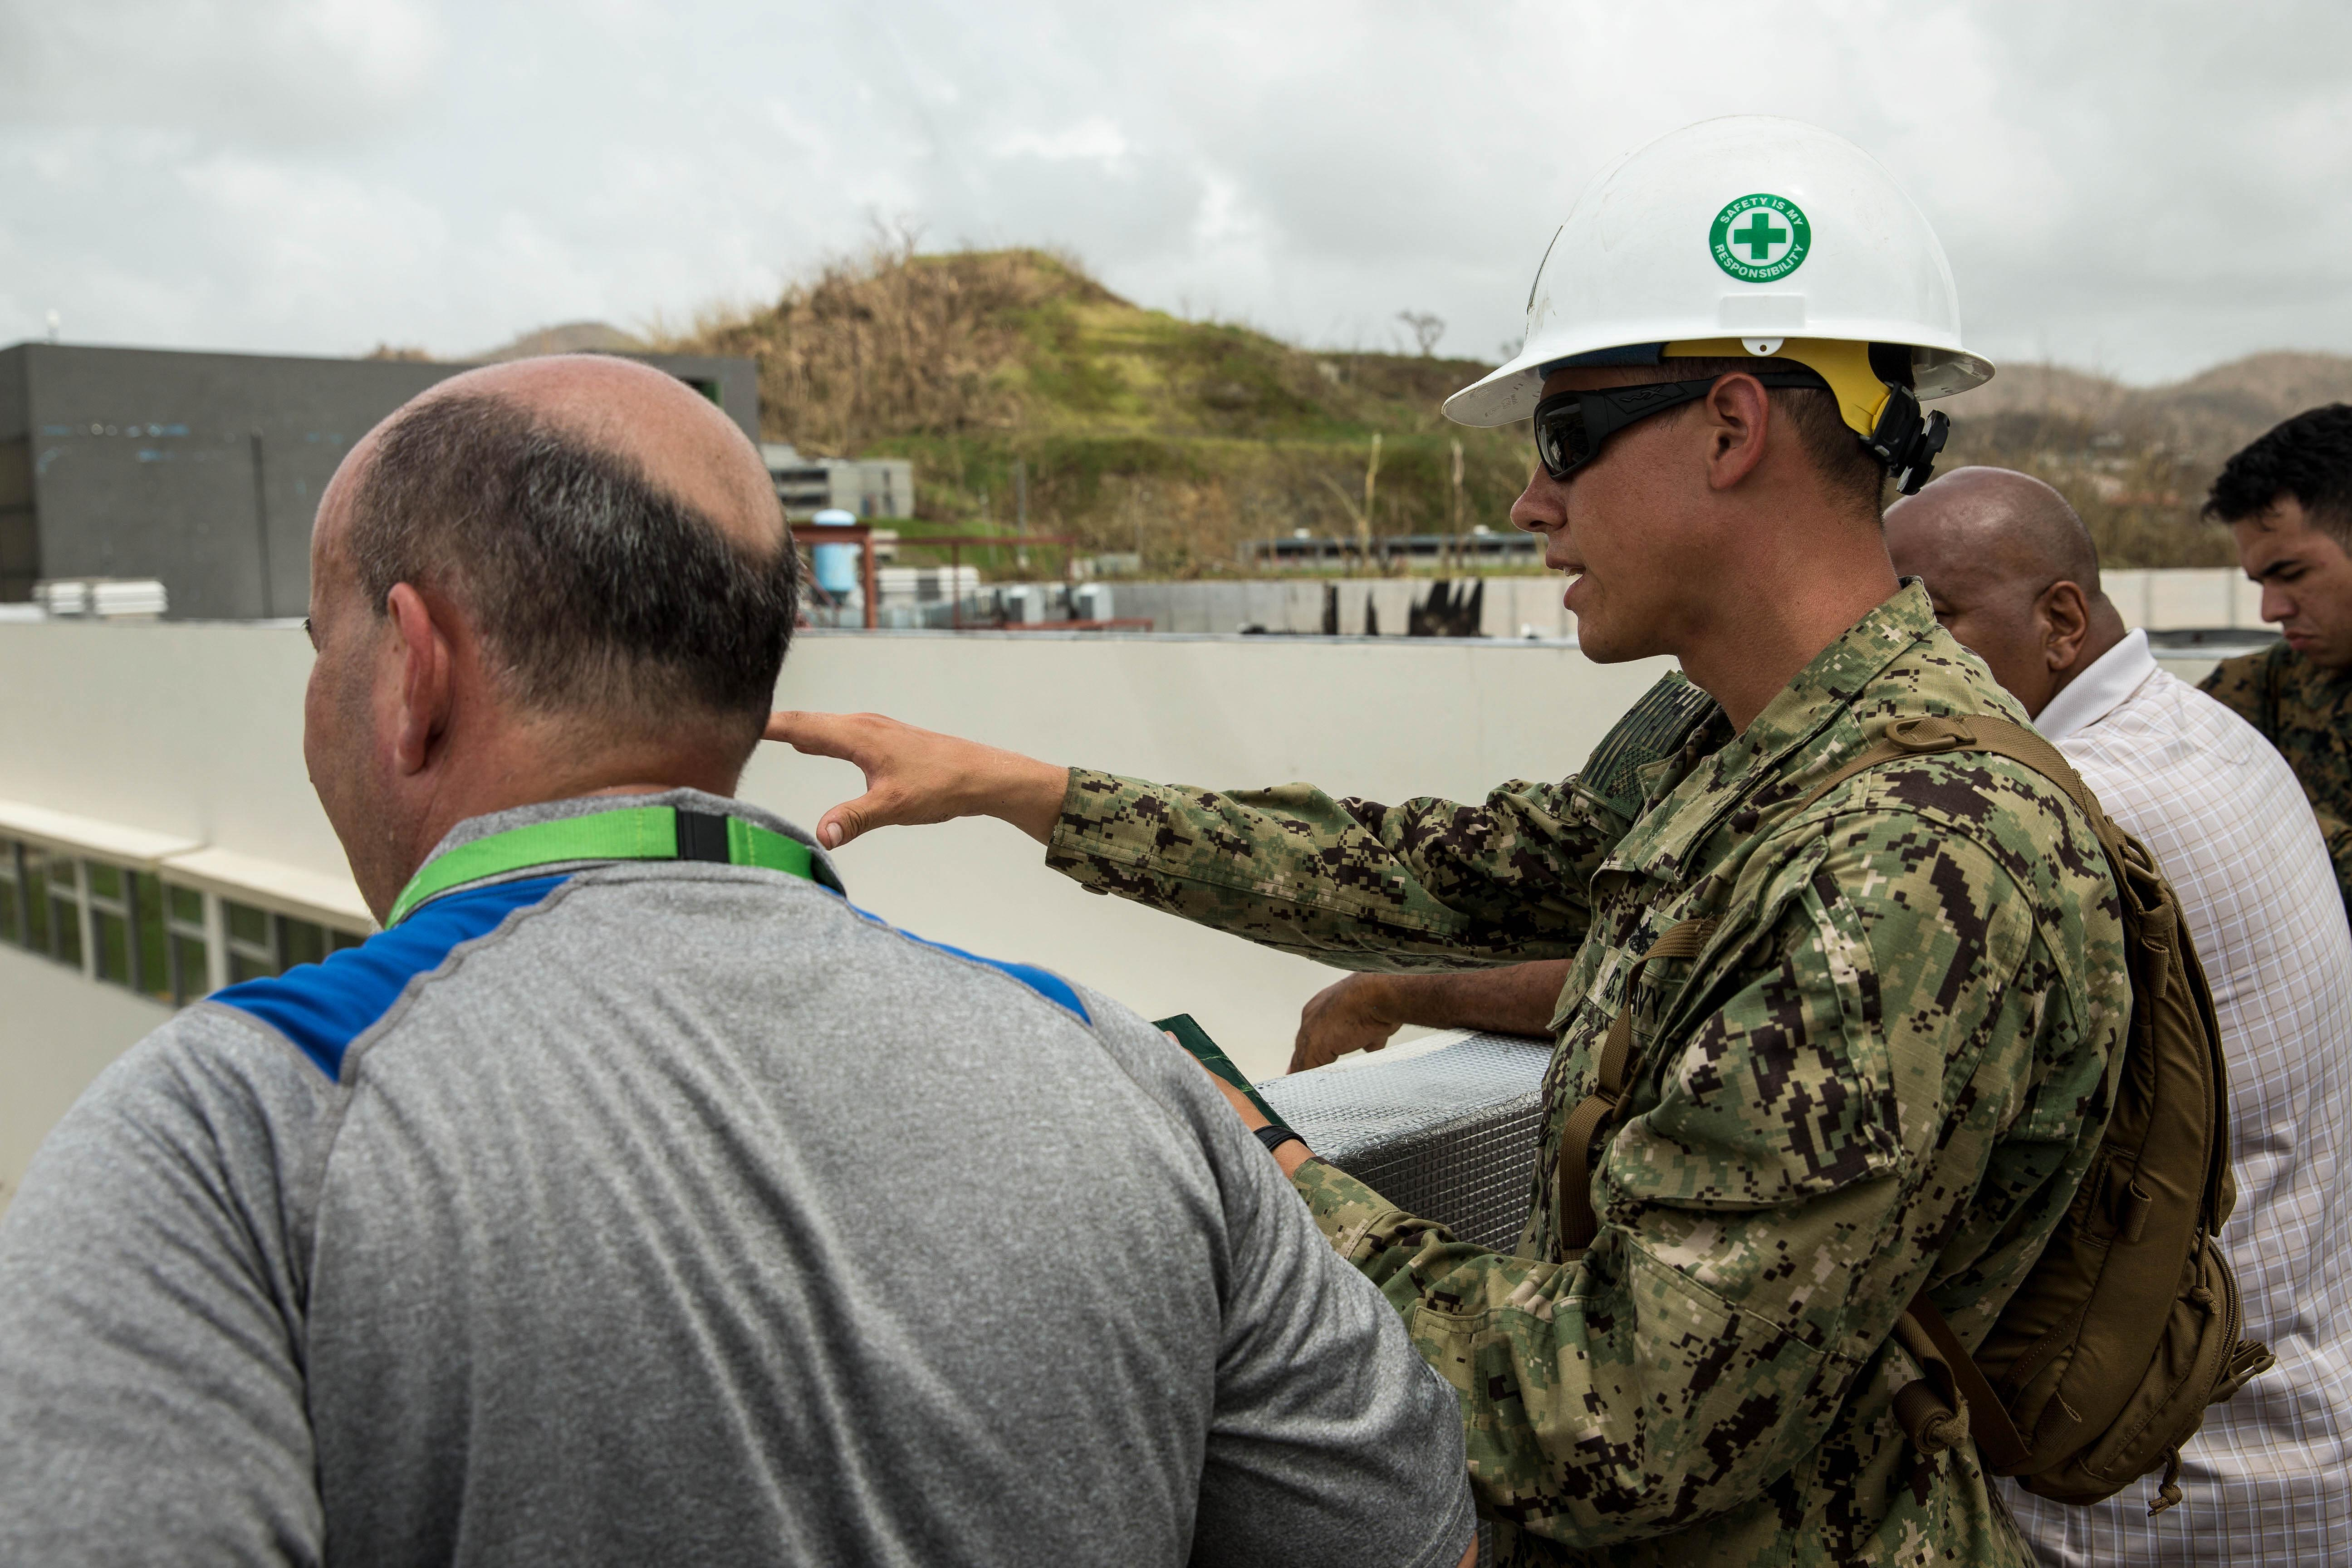 U.S. Navy Lt. Colin A. Roberts, a civil engineer core inspector with Amphibious Construction Battalion 2, speaks with local civilian employees during an assessment of Ryder Hospital's medical and operational needs as part of Hurricane Maria relief efforts at Humacao, Puerto Rico, Sept. 27, 2017. The 26th Marine Expeditionary Unit, along with other services of the Department of Defense, is supporting the Federal Emergency Management Agency, the lead federal agency, and local authorities in Puerto Rico with the combined goal of protecting the lives and safety of those in affected areas. (U.S. Marine Corps photo by Lance Cpl. Tojyea G. Matally)